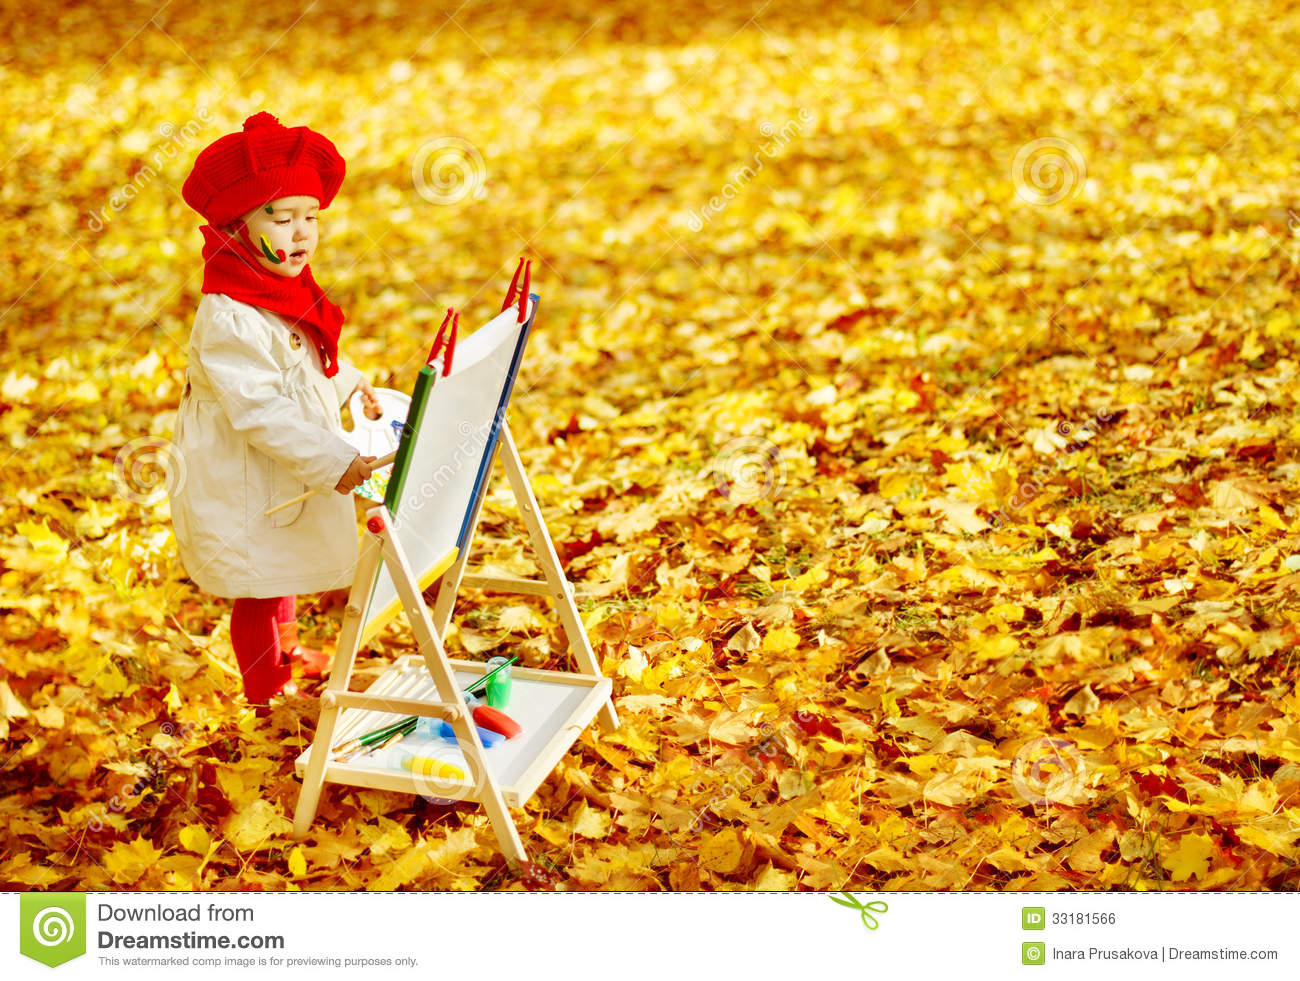 Fall Leaves Iphone 7 Wallpaper Autumn Baby Girl Drawing In Fall Leaves Park Kid Painting